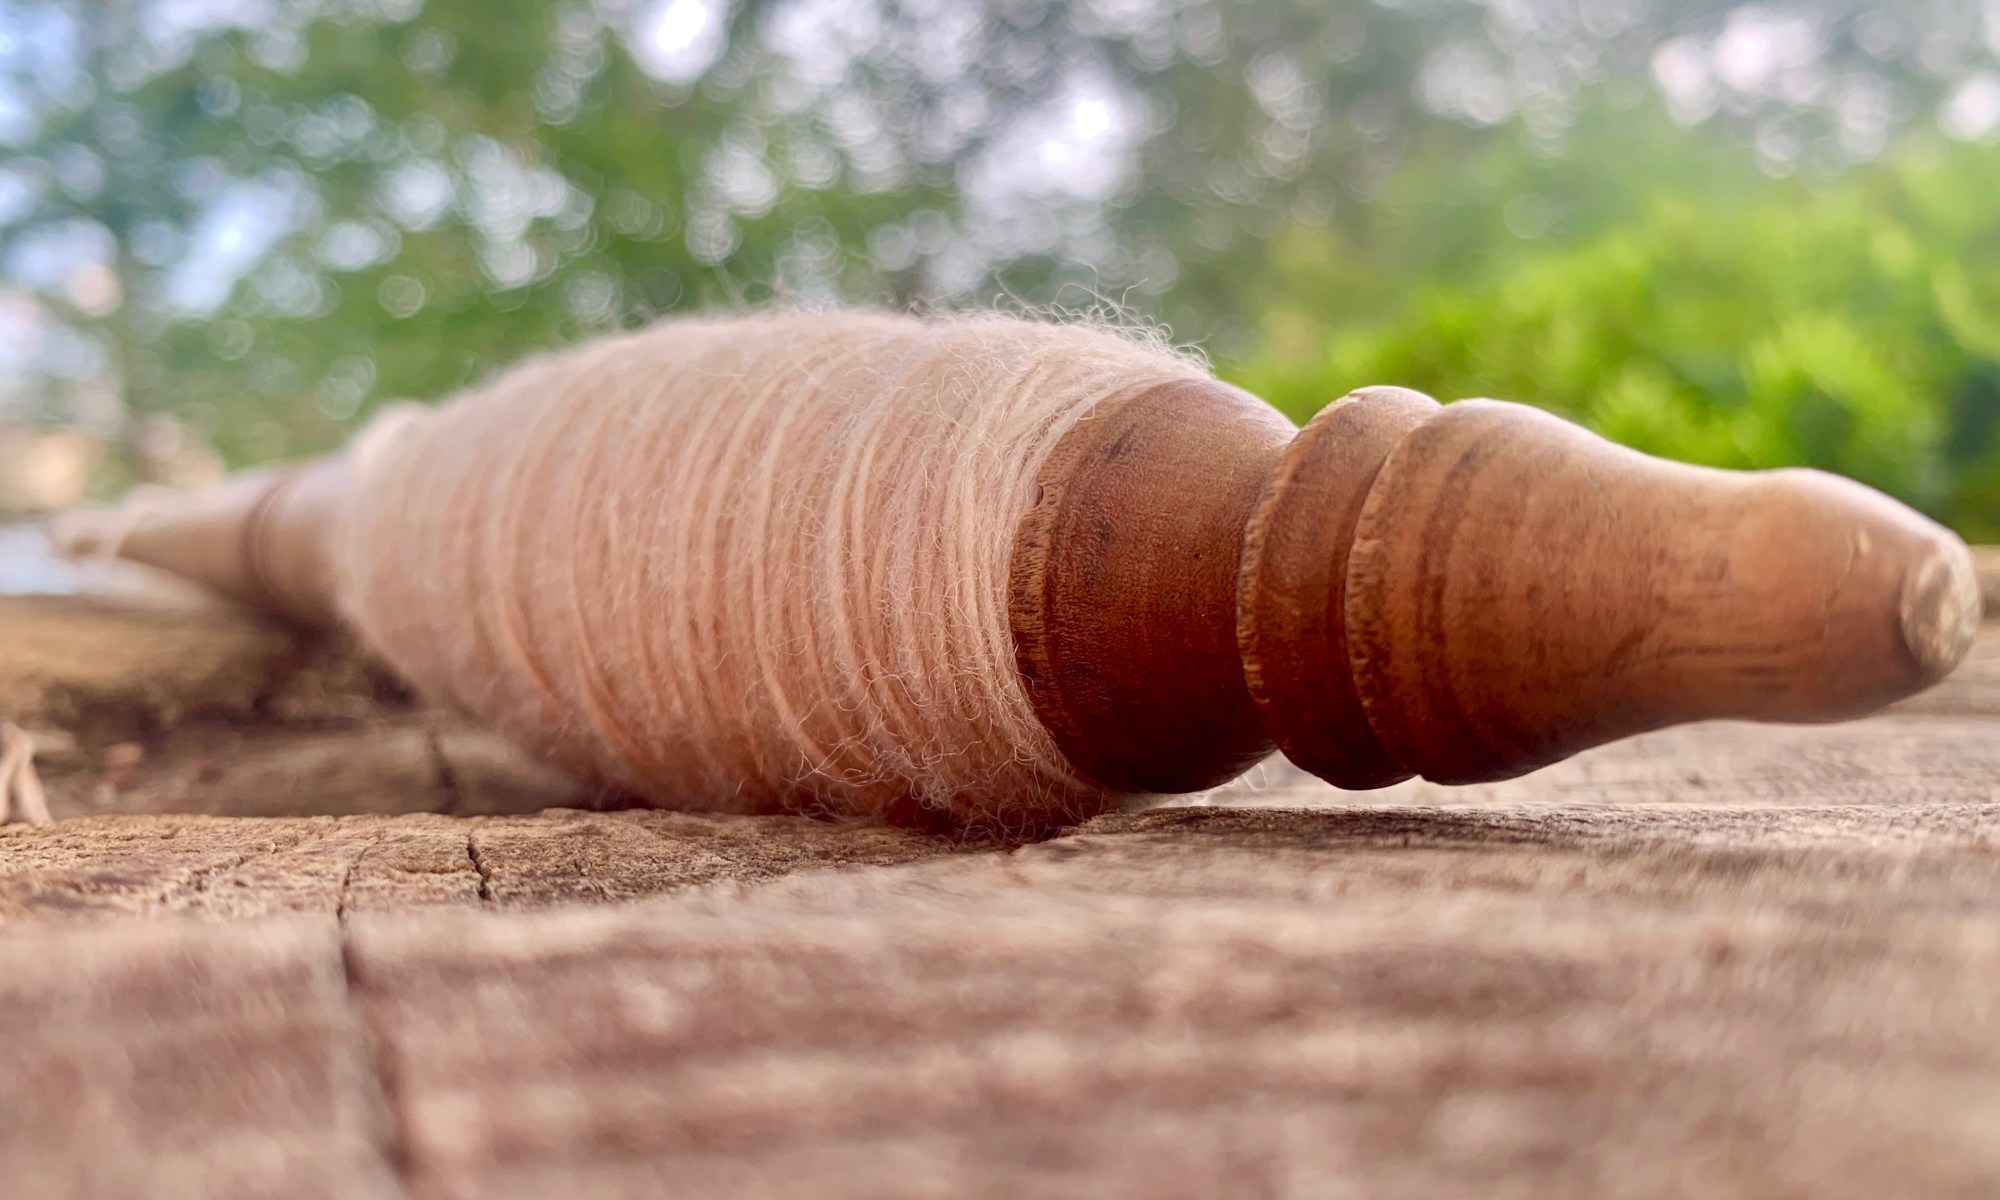 Close-up of an antique spindle with yarn wound onto it.